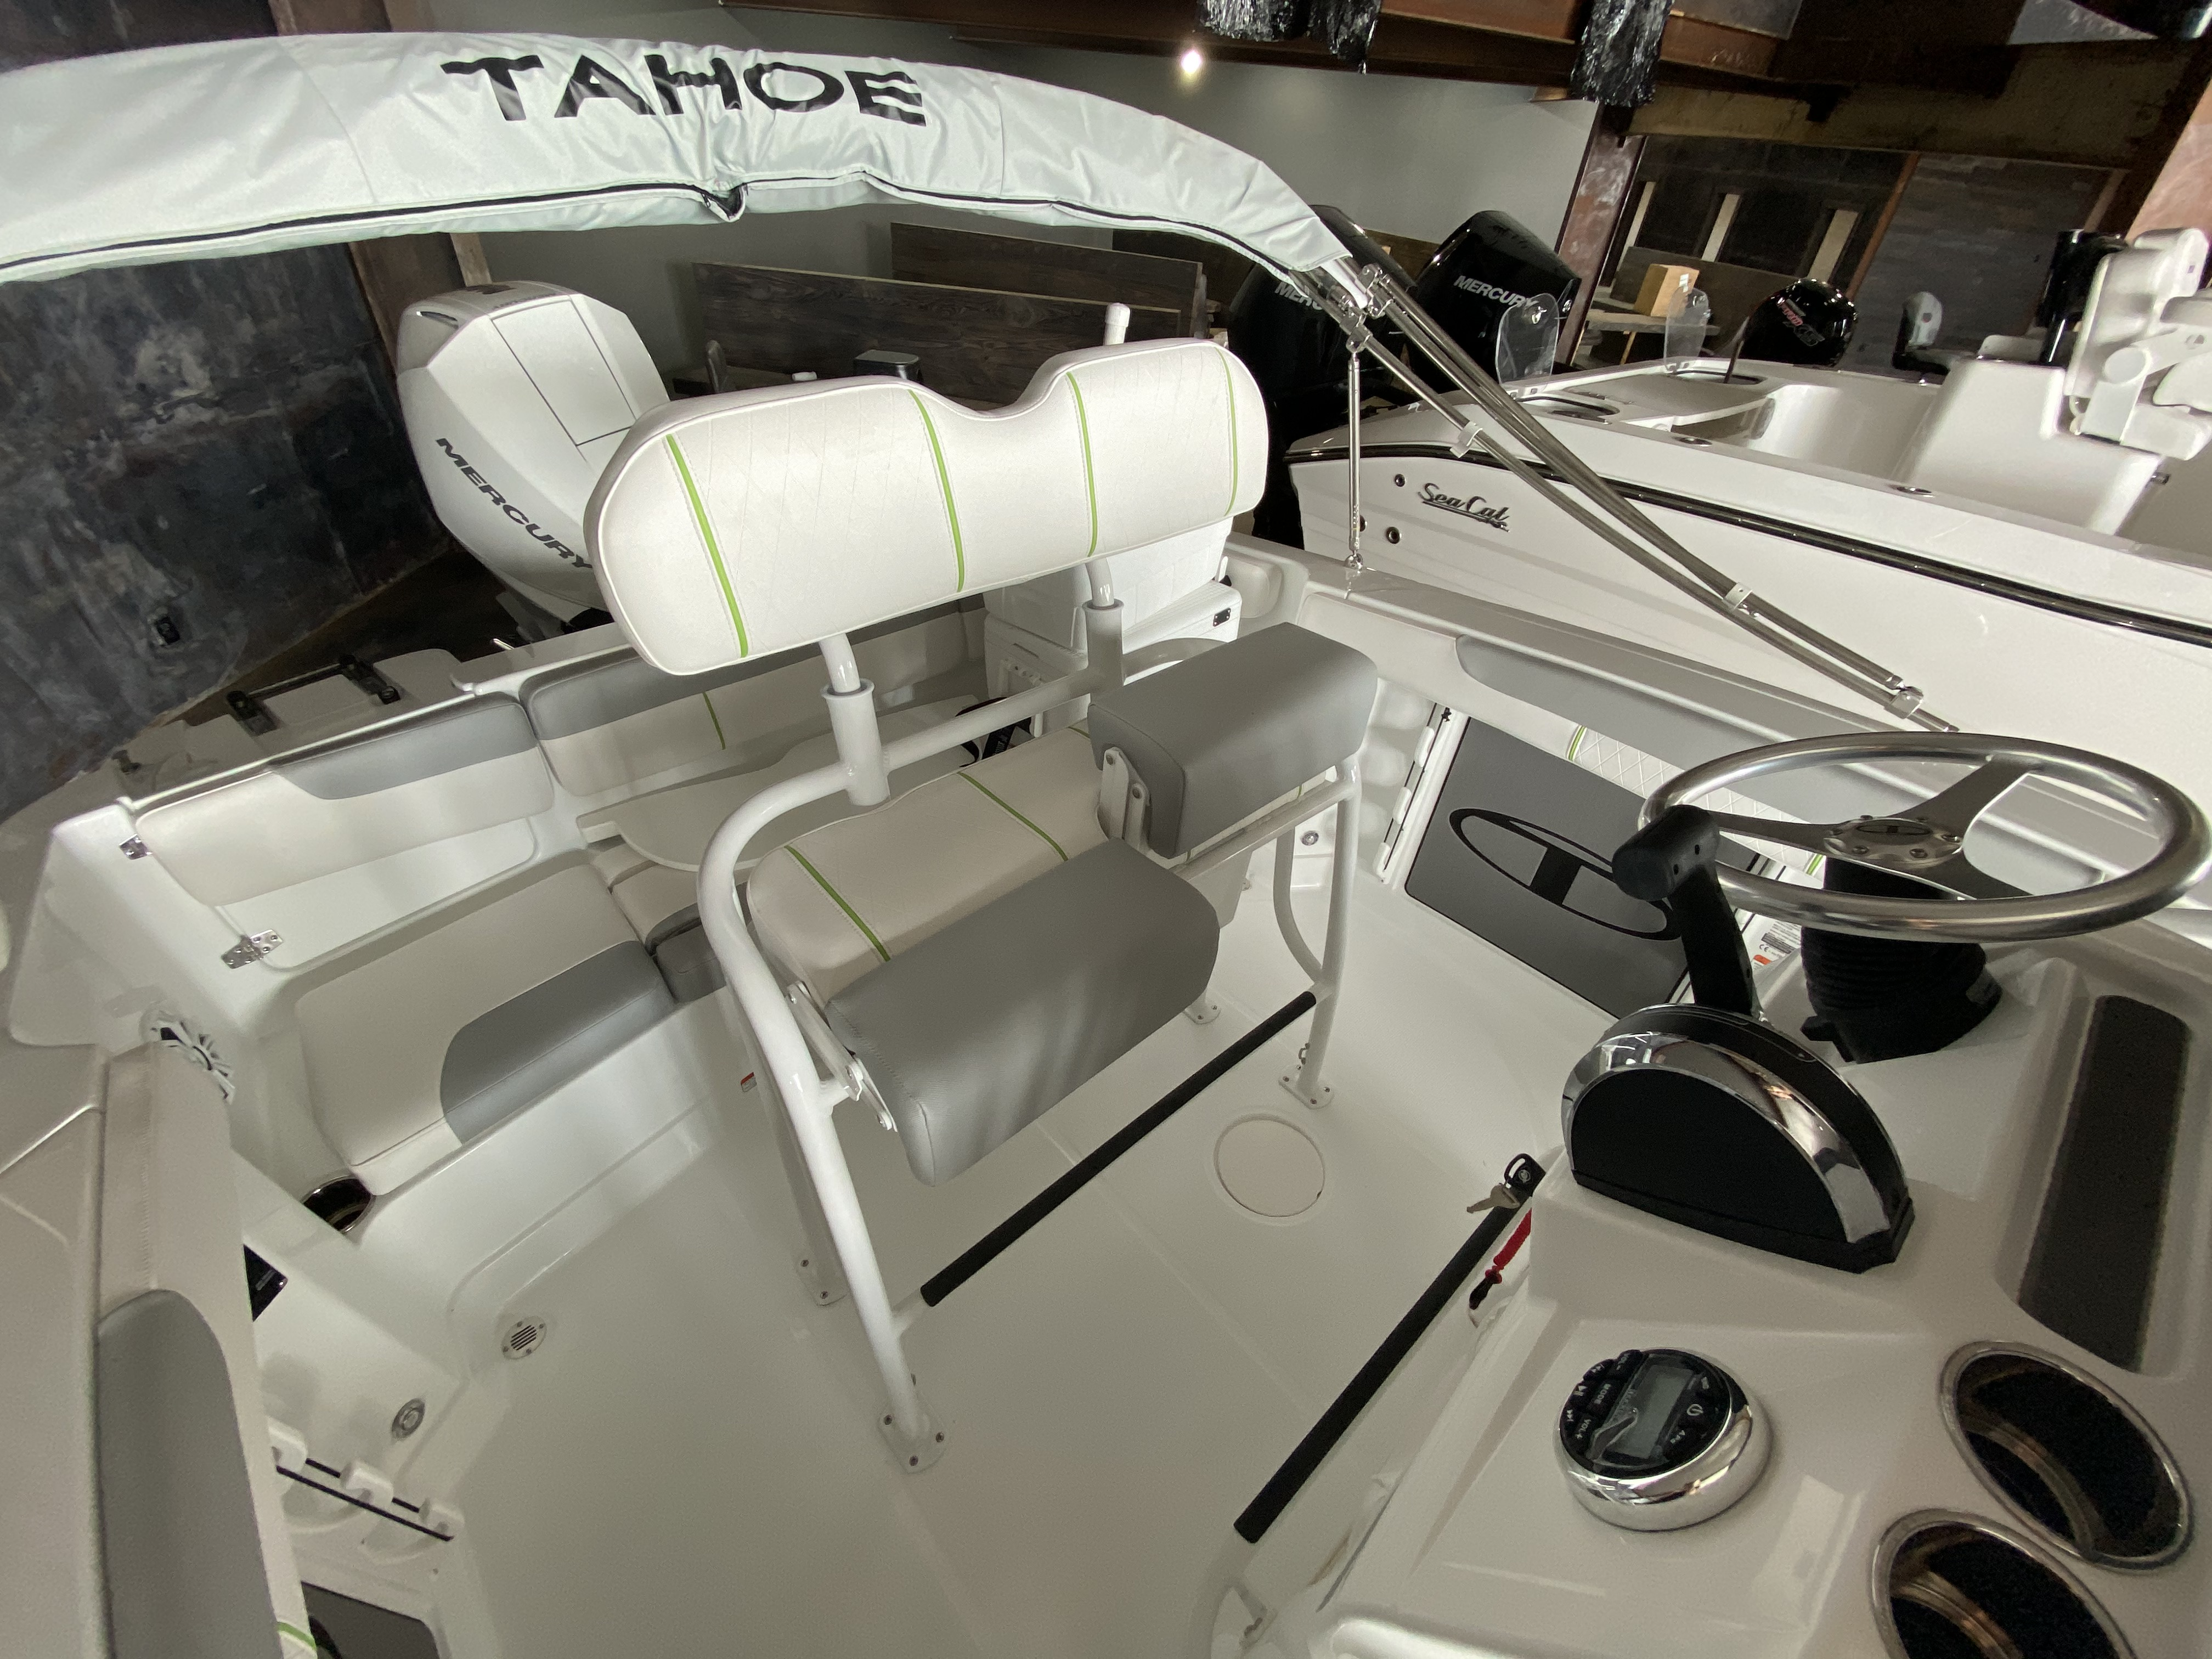 2021 Tahoe boat for sale, model of the boat is 2150cc & Image # 5 of 13